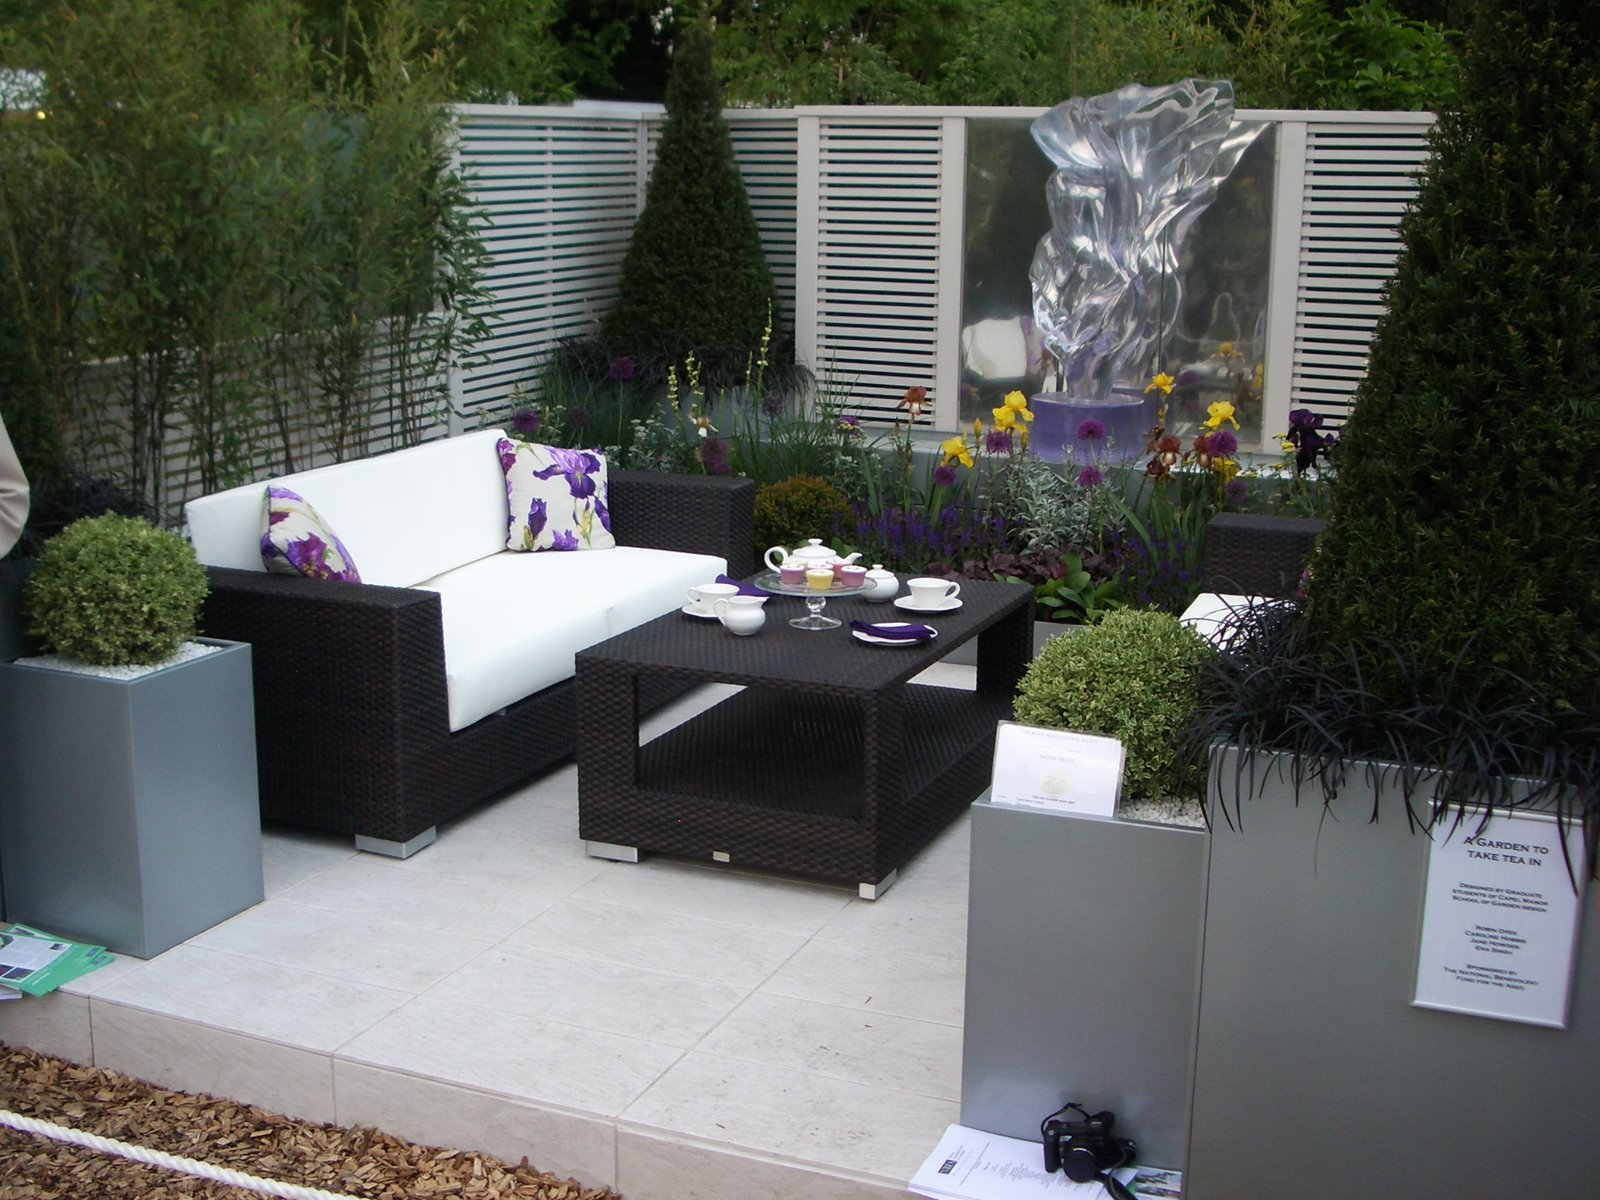 Adding Loveseat to Complete Seating Unit of Small Patio with Beautiful Plants Surrounding